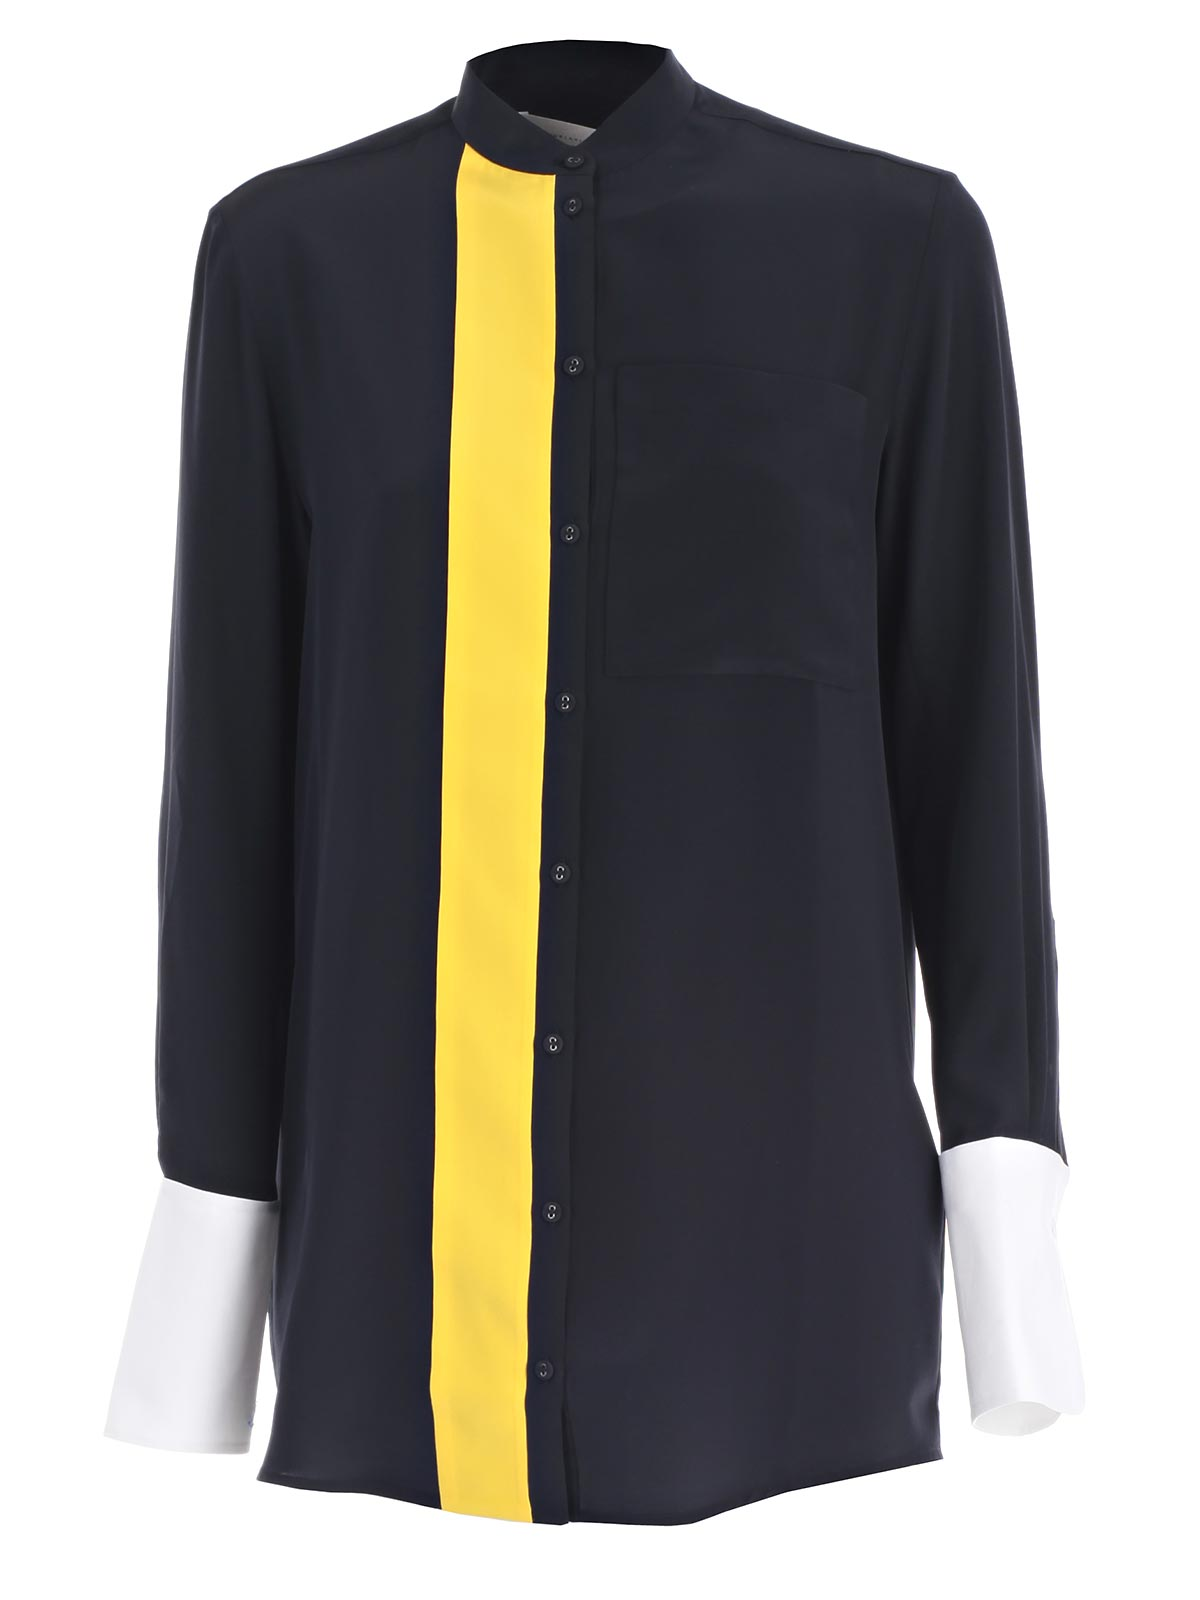 Picture of VICTORIA, VICTORIA BECKHAM SHIRTS